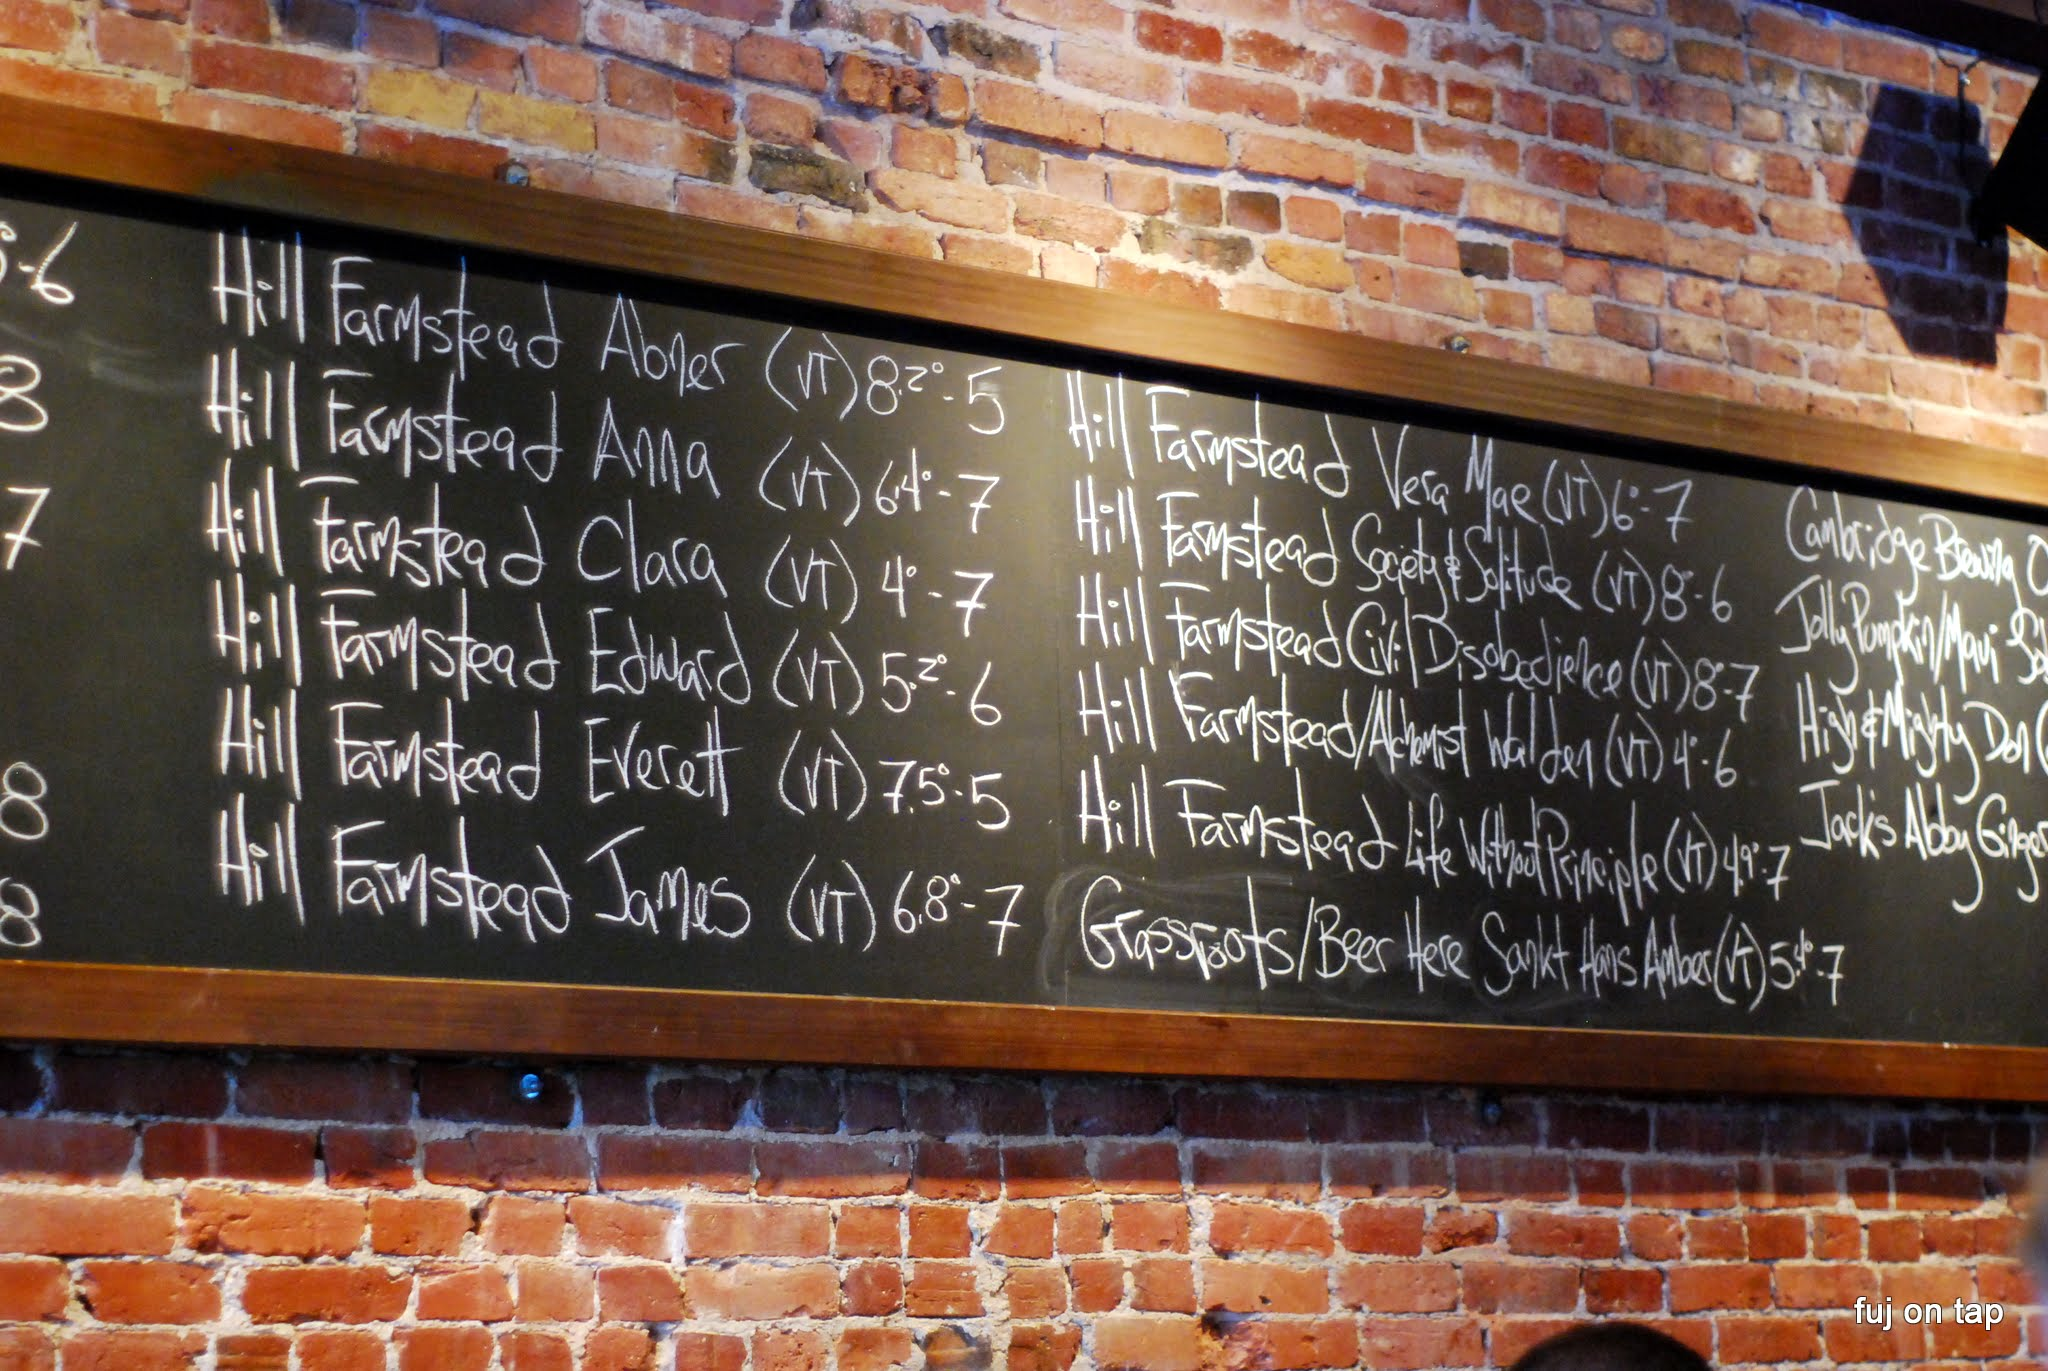 Hill Farmstead Tap List at Armsby Abbey